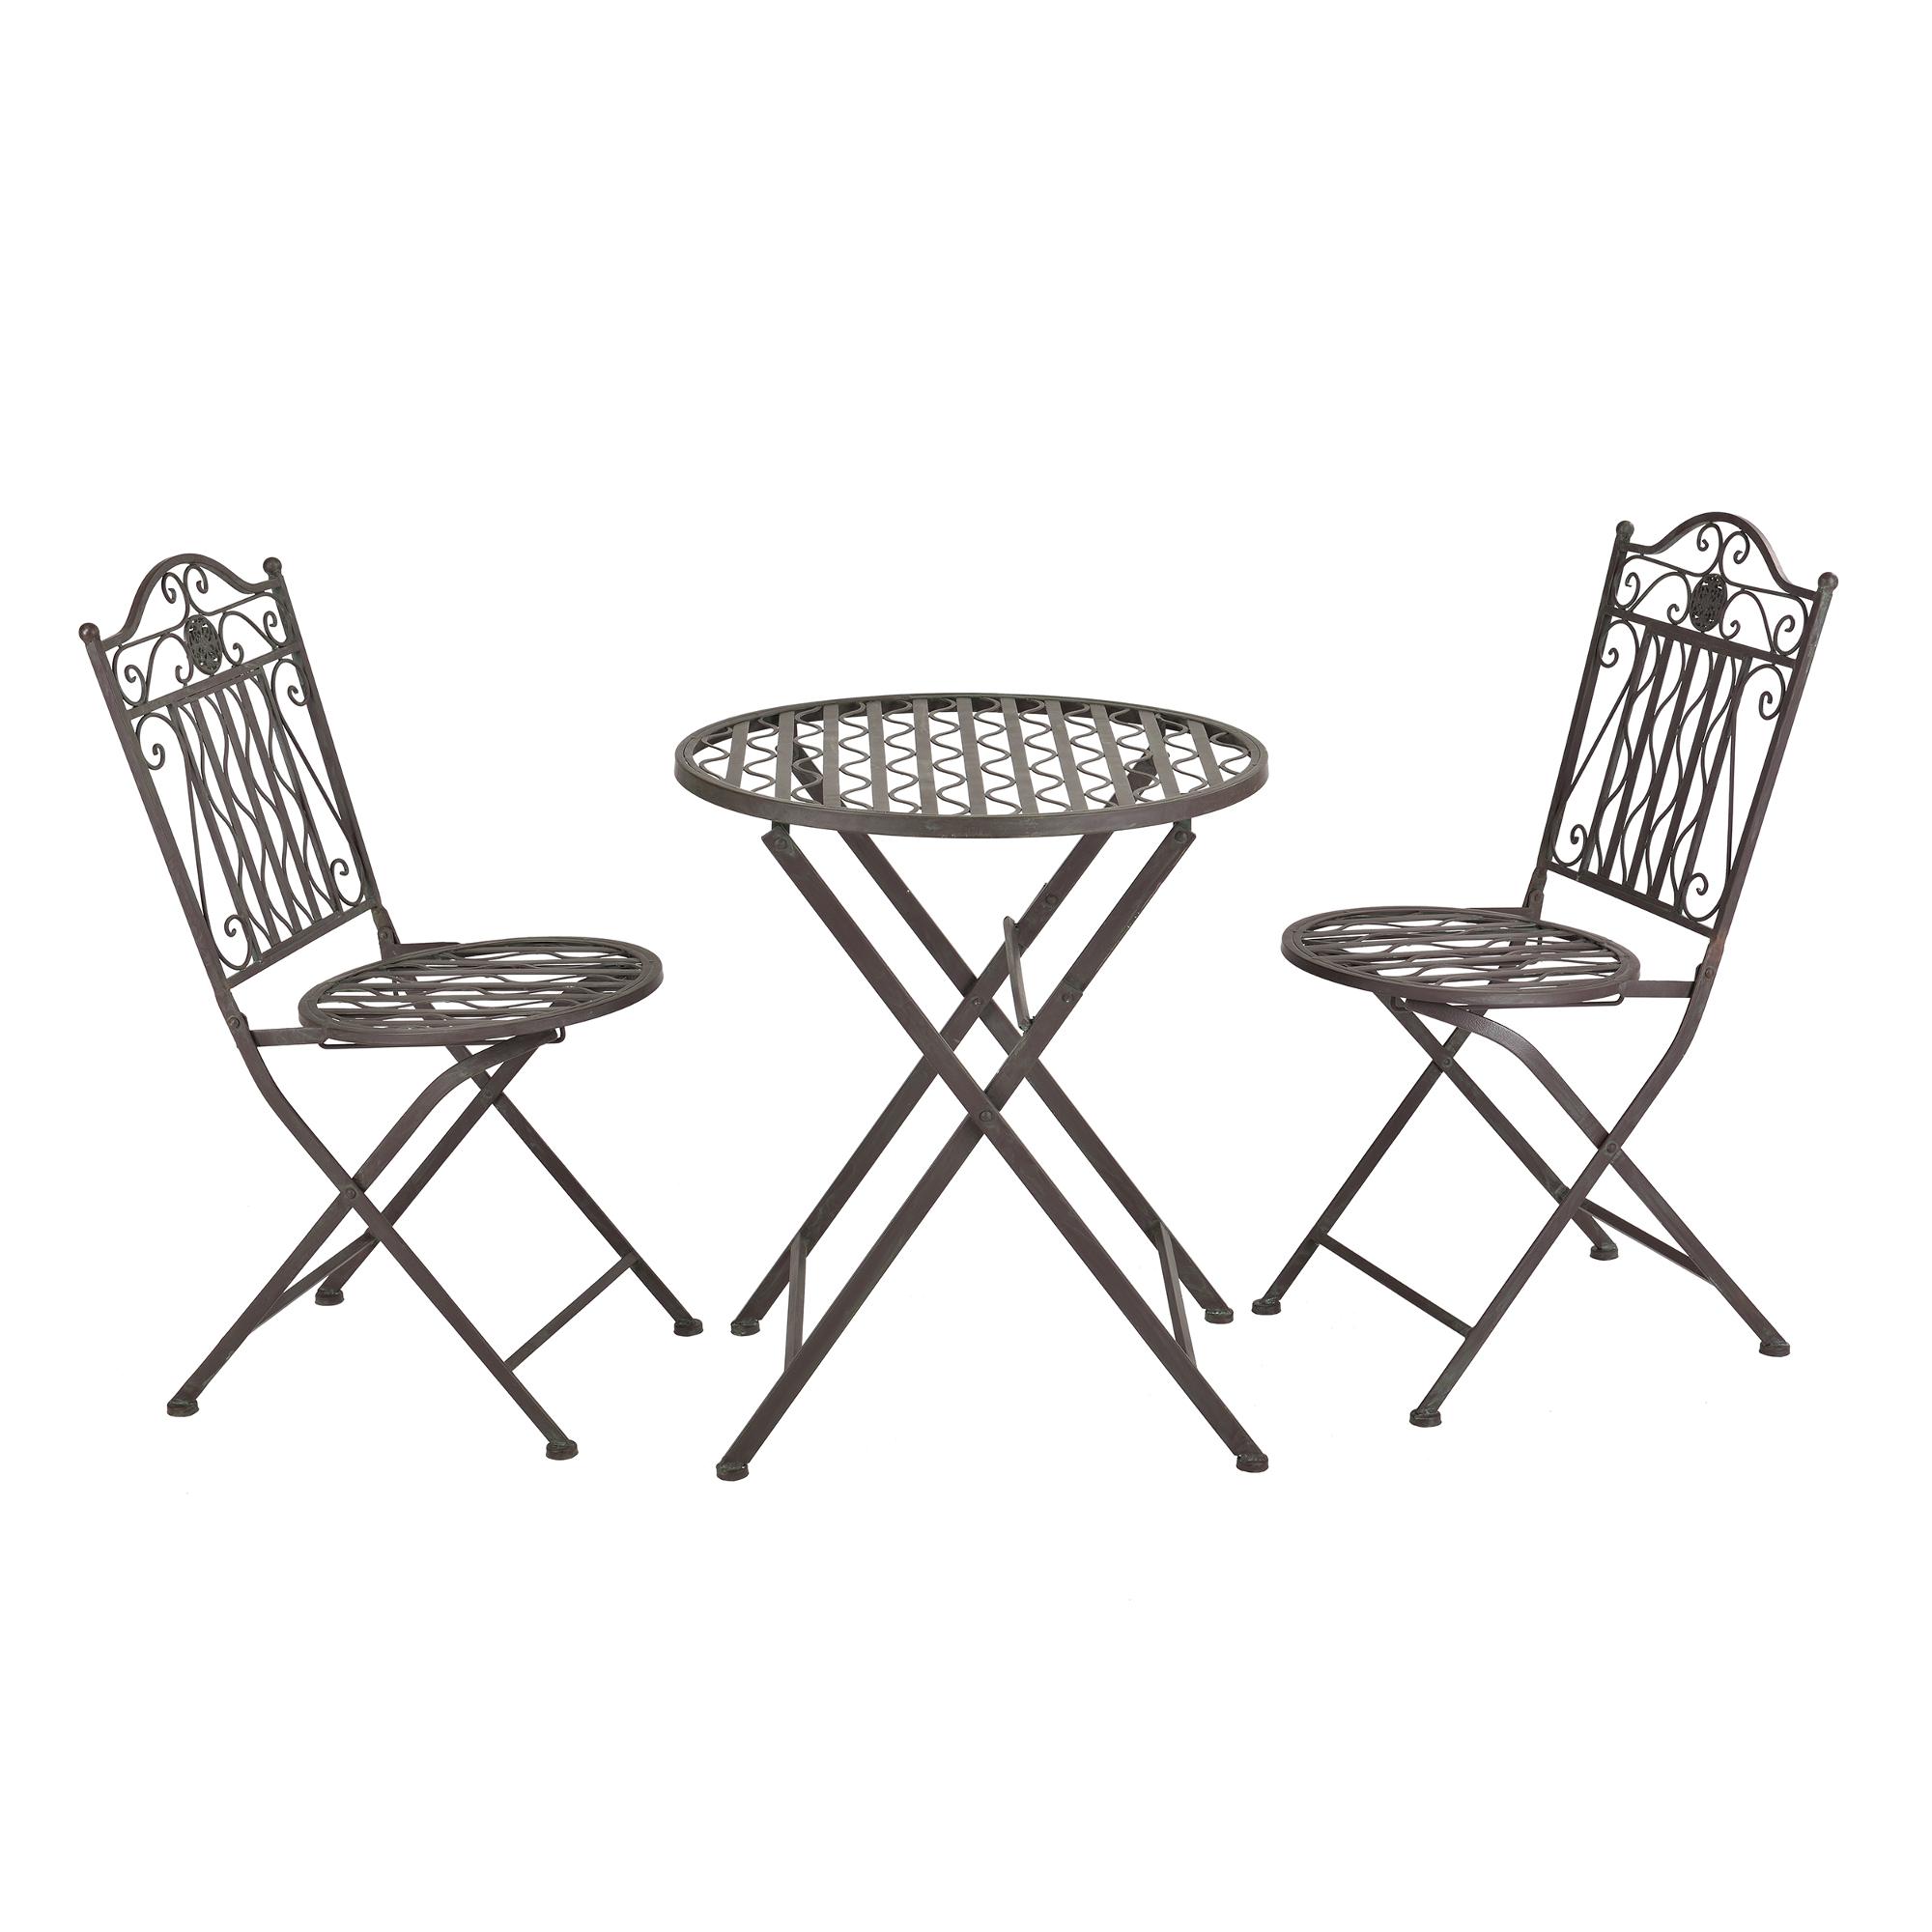 bistro set tisch 2 st hle essgruppe sitzgruppe gartenm bel metall. Black Bedroom Furniture Sets. Home Design Ideas